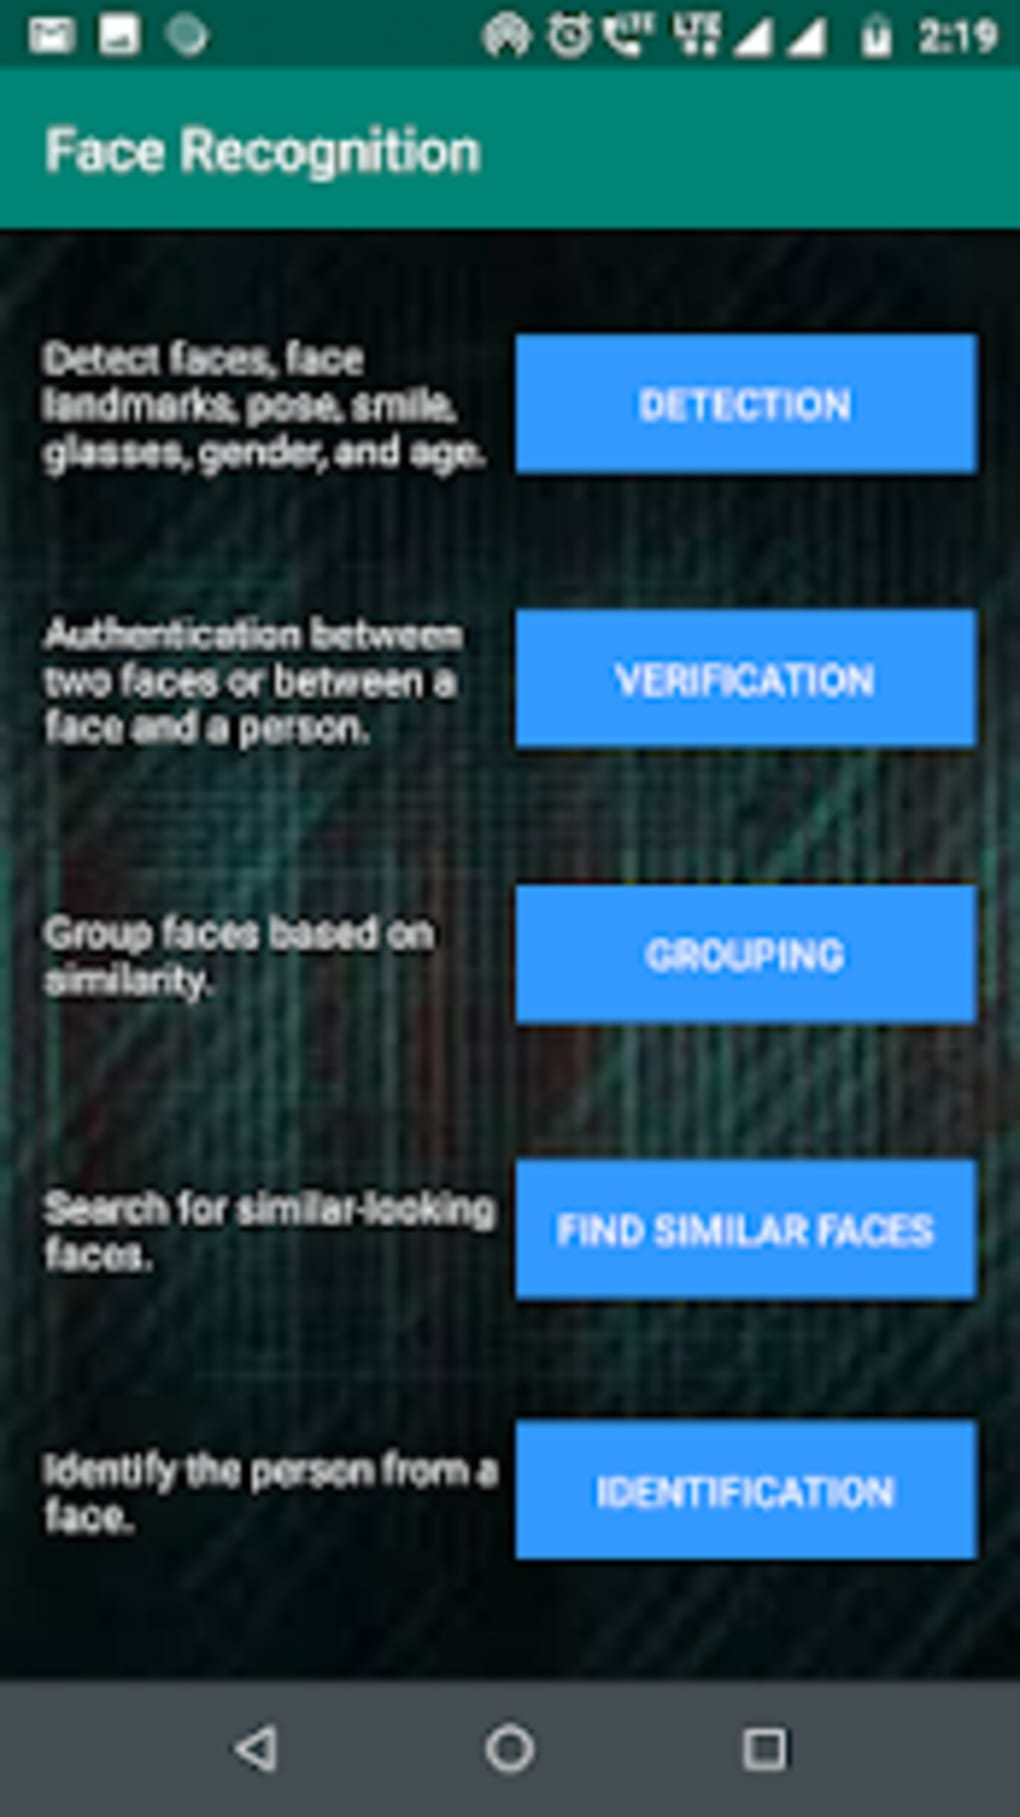 Face Recognition for Android - Download